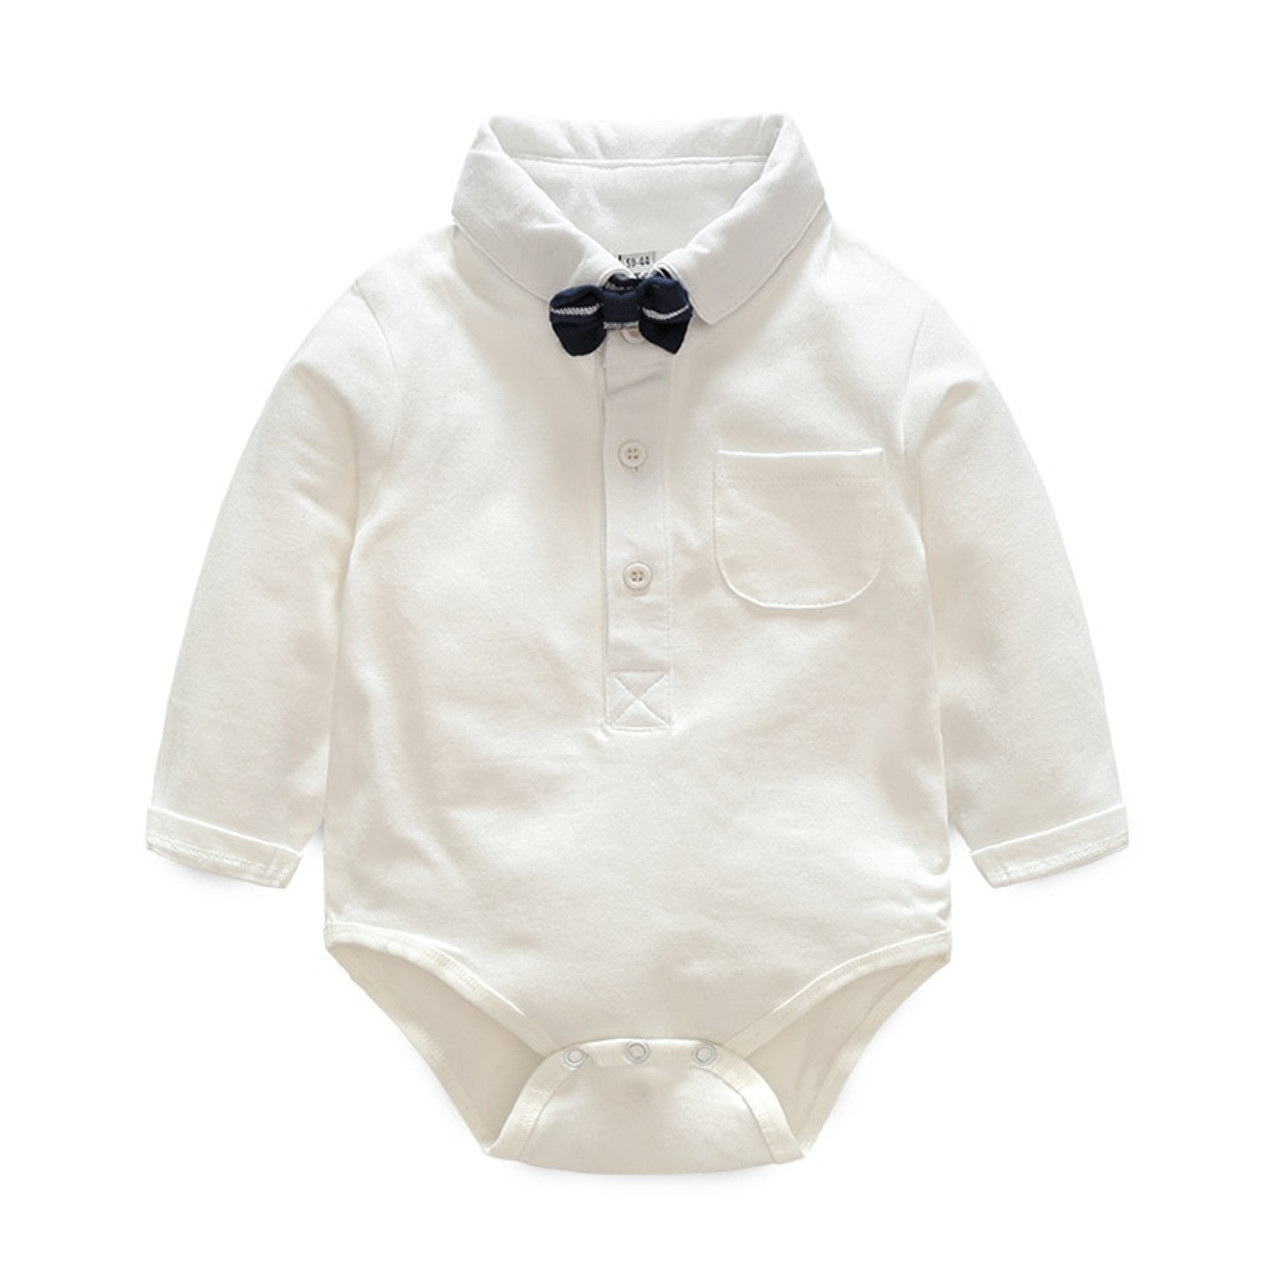 866c4573b05e ... baby boy clothes baby clothing suit gentleman Style bow tie + plaid  shirt + Bib baby ...